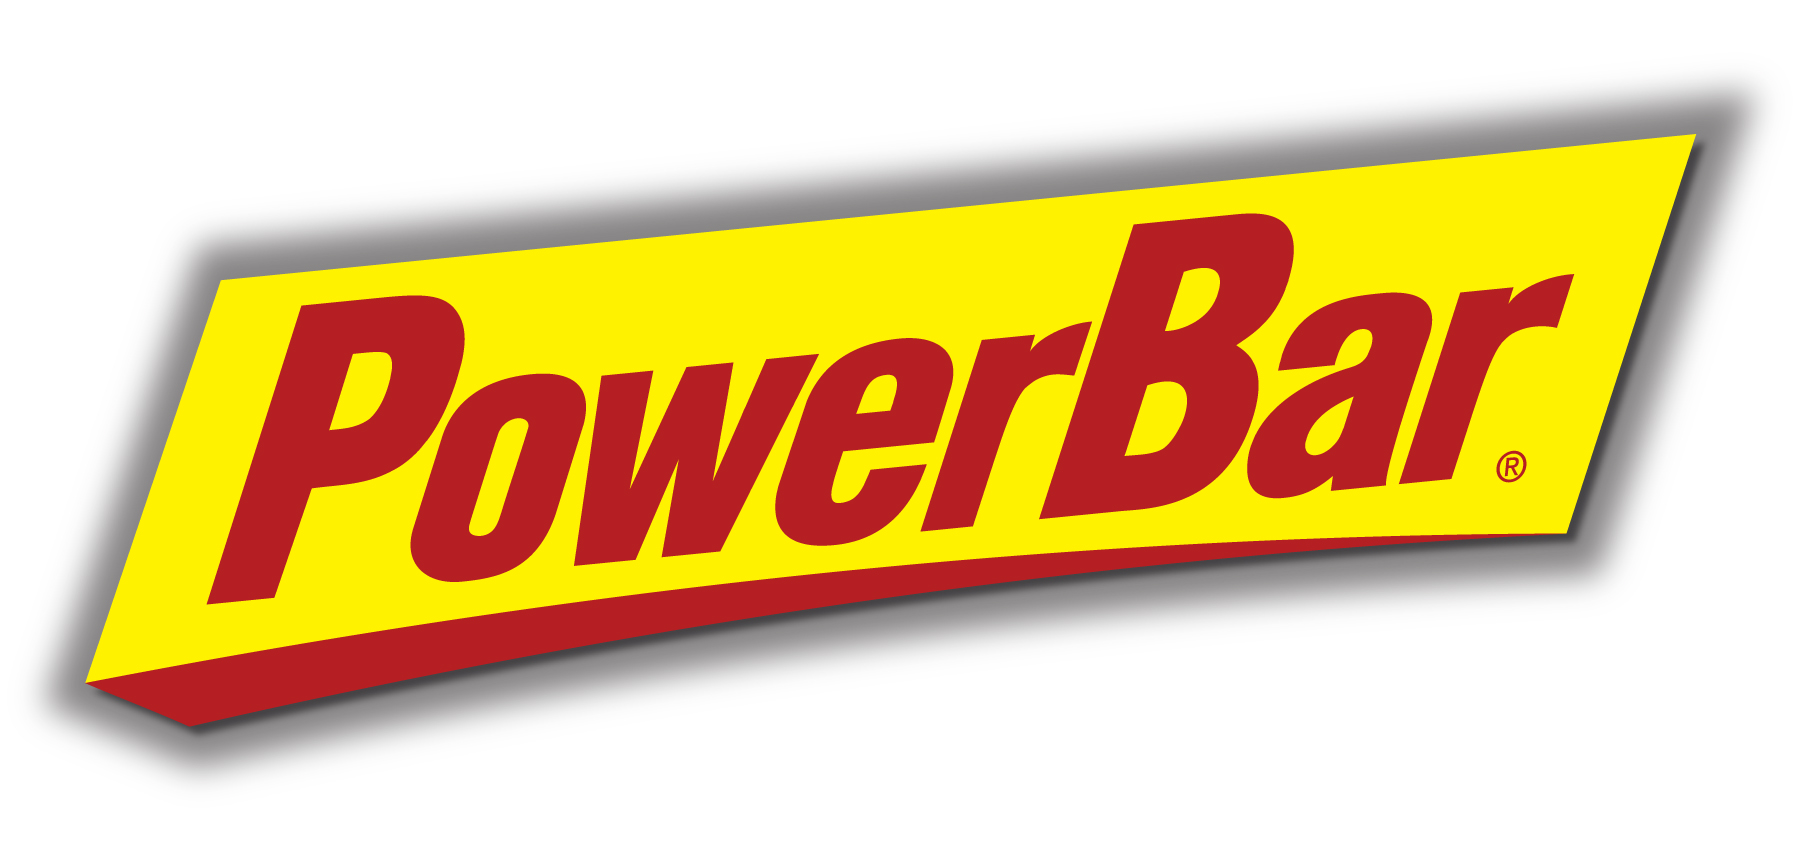 Powerbar was started to to help athletes reach their goals by providing nutrition tools for optimum athletic performance.